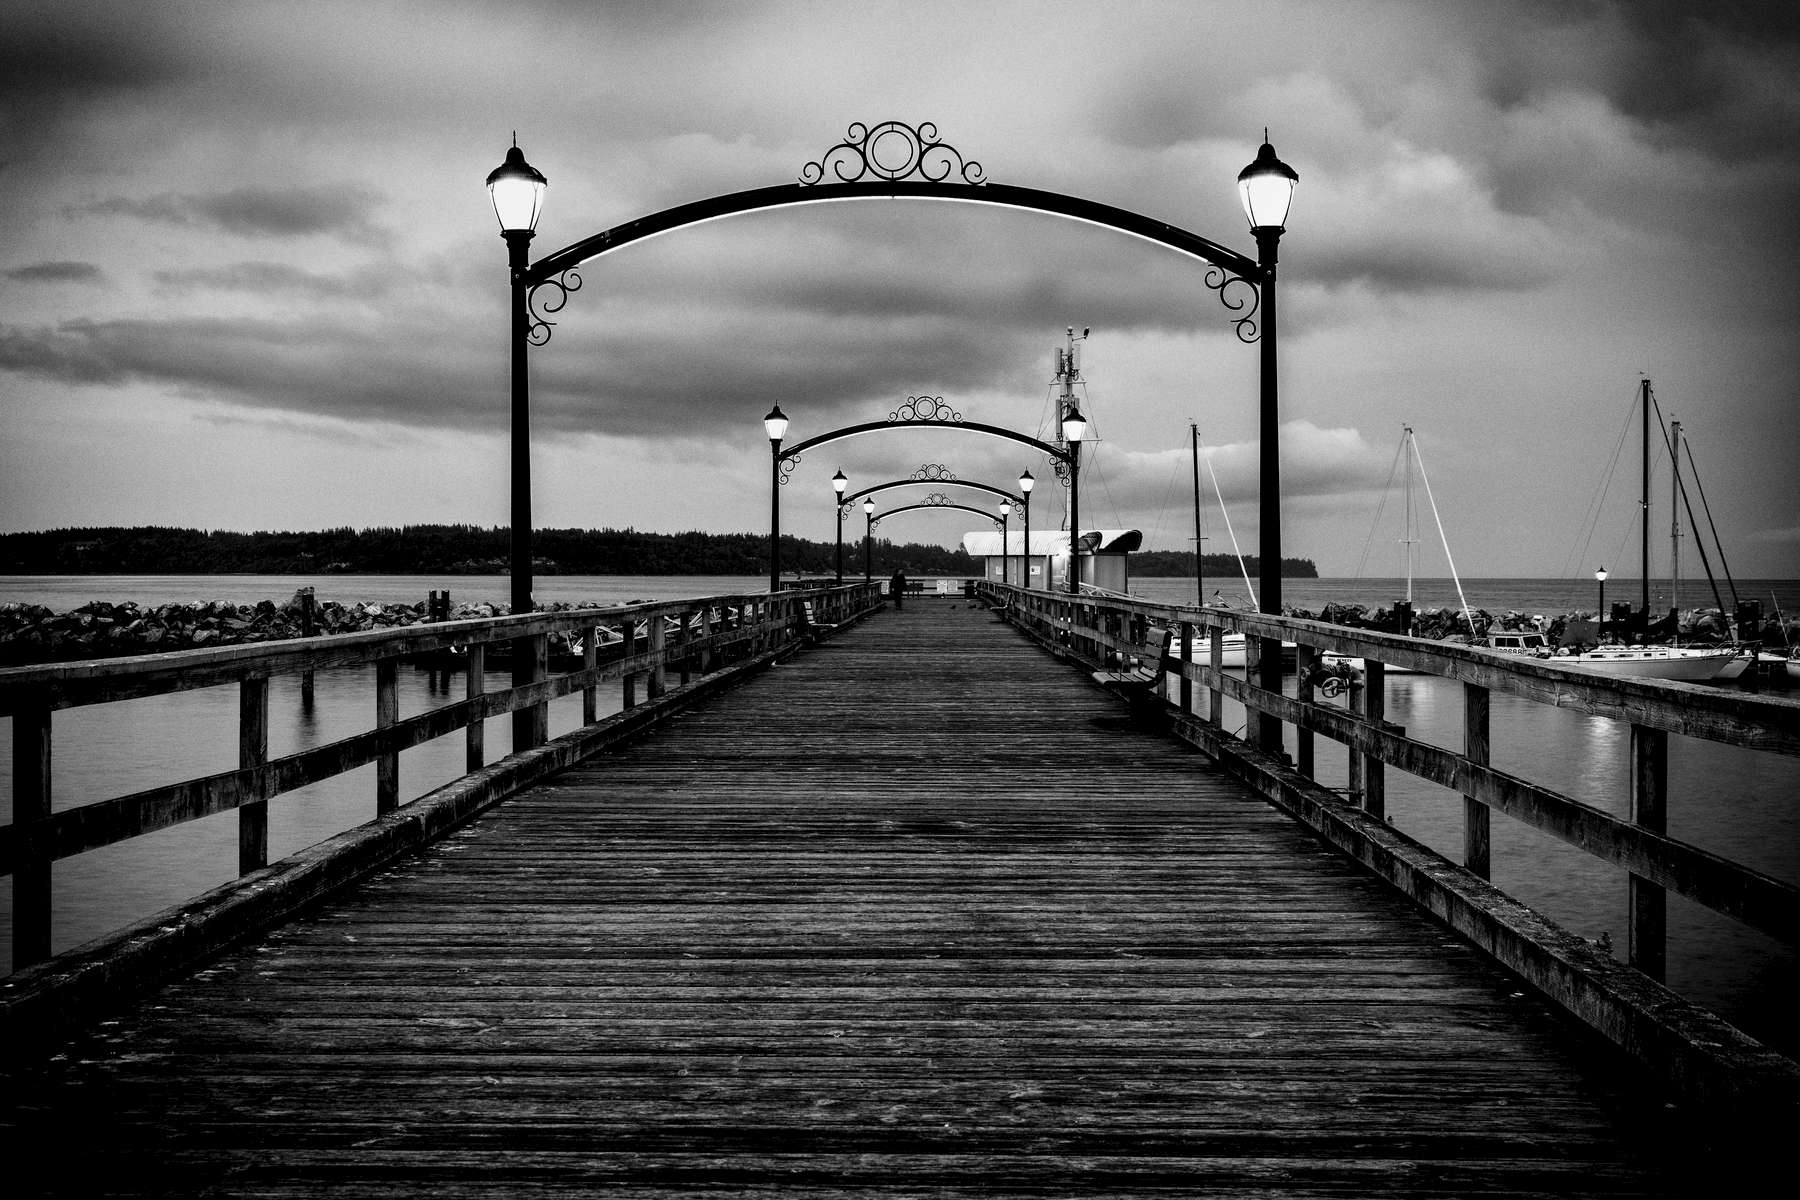 Pier at White Rock